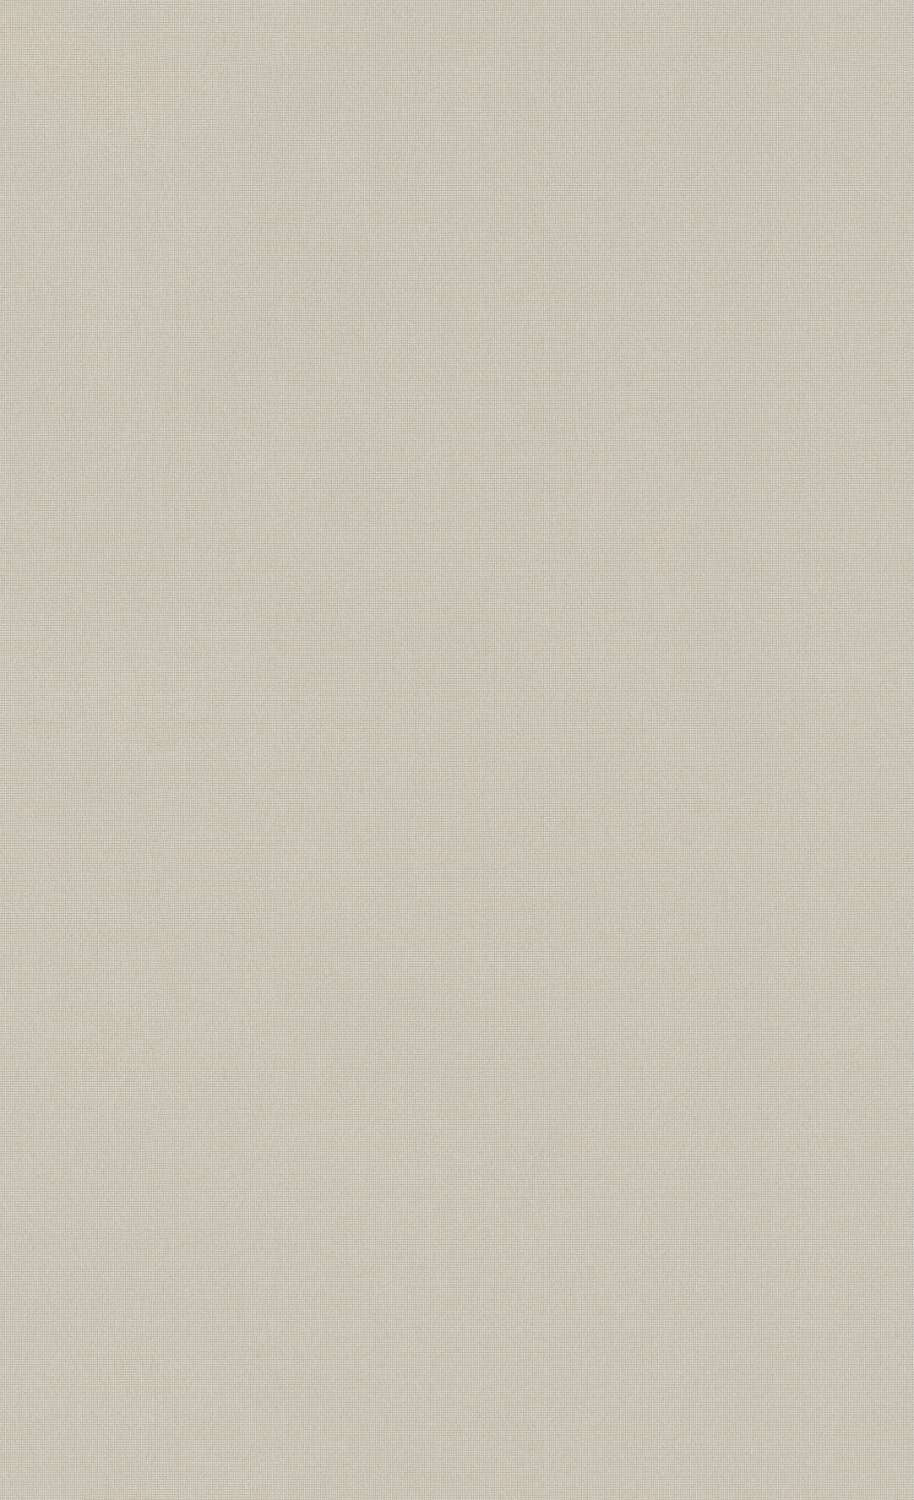 Minimalist Powder Gray Wallpaper C7280 | Commercial and Hospitality